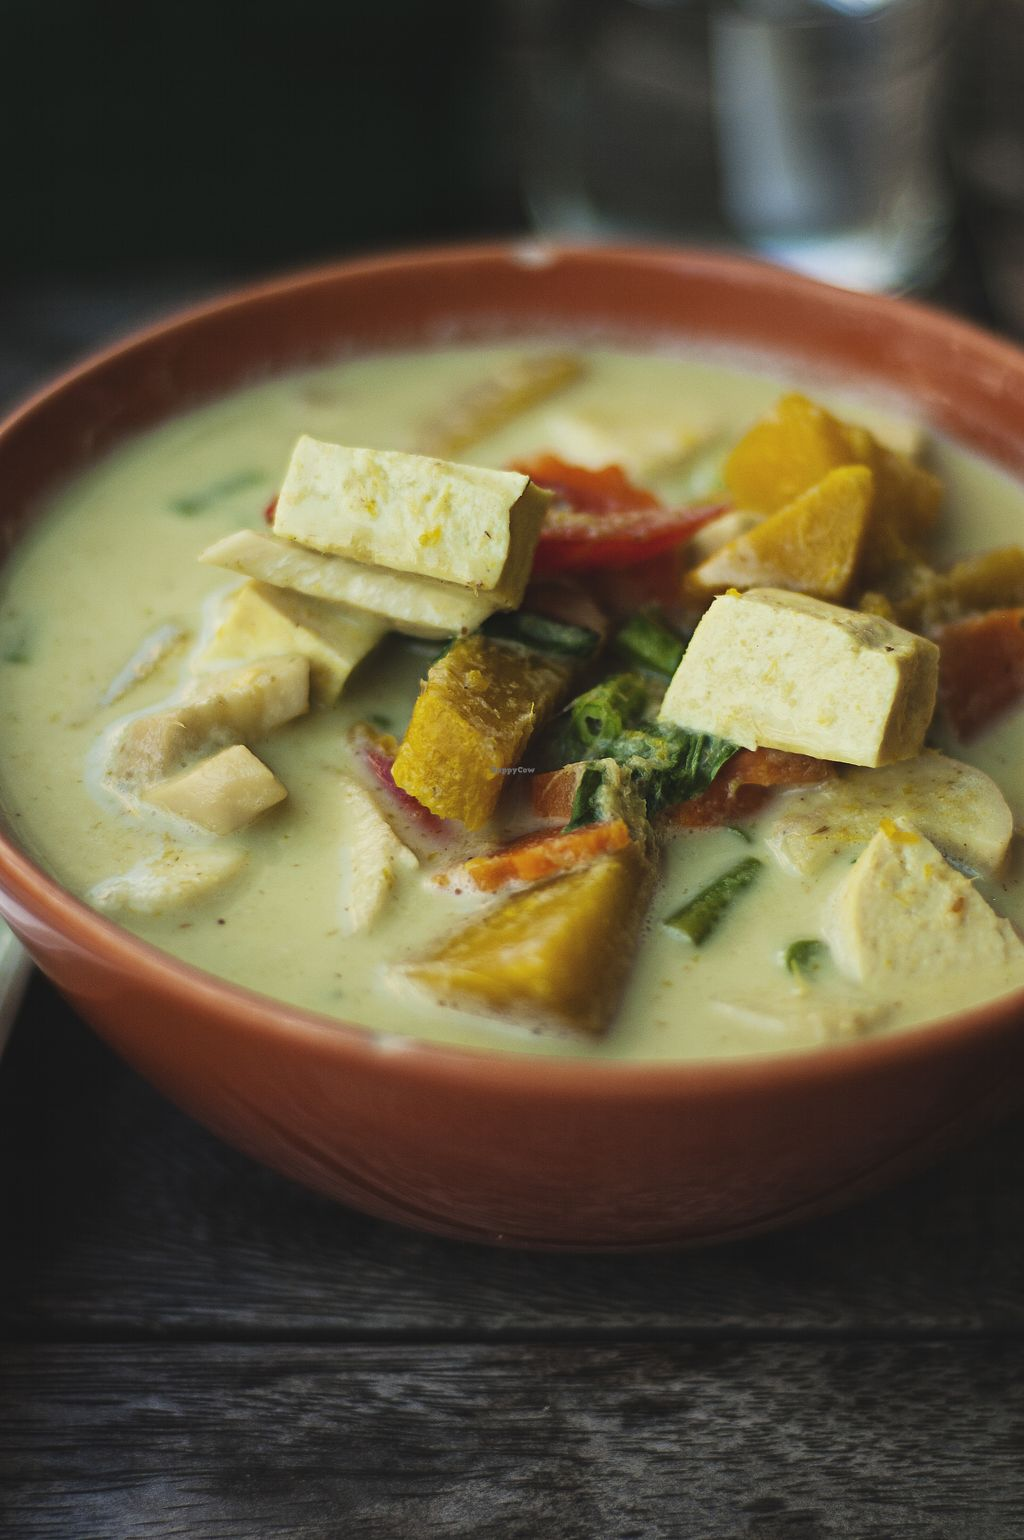 "Photo of Anchan Vegetarian Restaurant  by <a href=""/members/profile/peasandunderstanding"">peasandunderstanding</a> <br/>Gorgeous Pumpkin Green Curry  <br/> April 28, 2018  - <a href='/contact/abuse/image/34920/391972'>Report</a>"